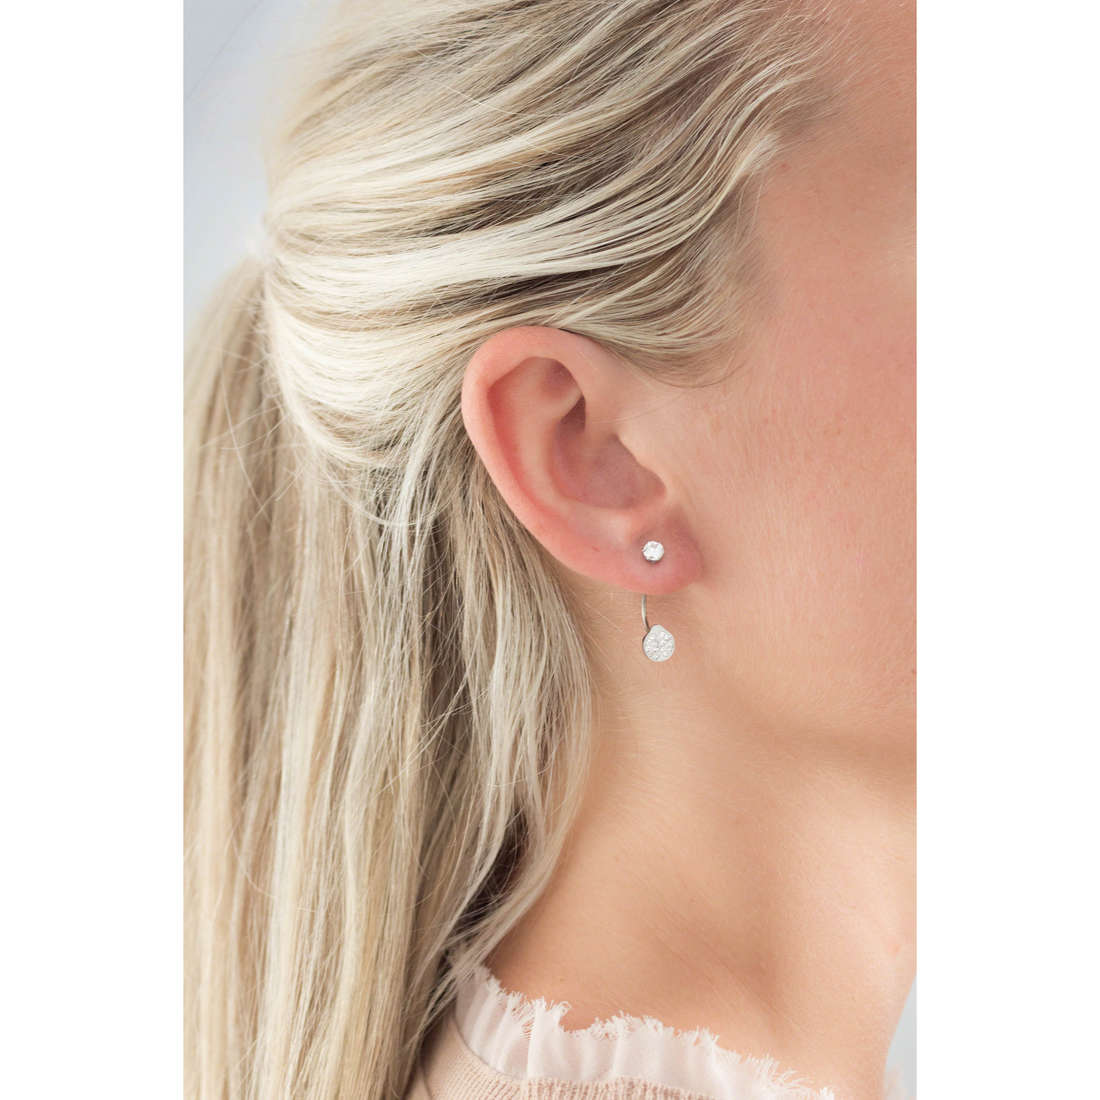 Marlù boucles d'oreille Time To femme 18OR036 indosso